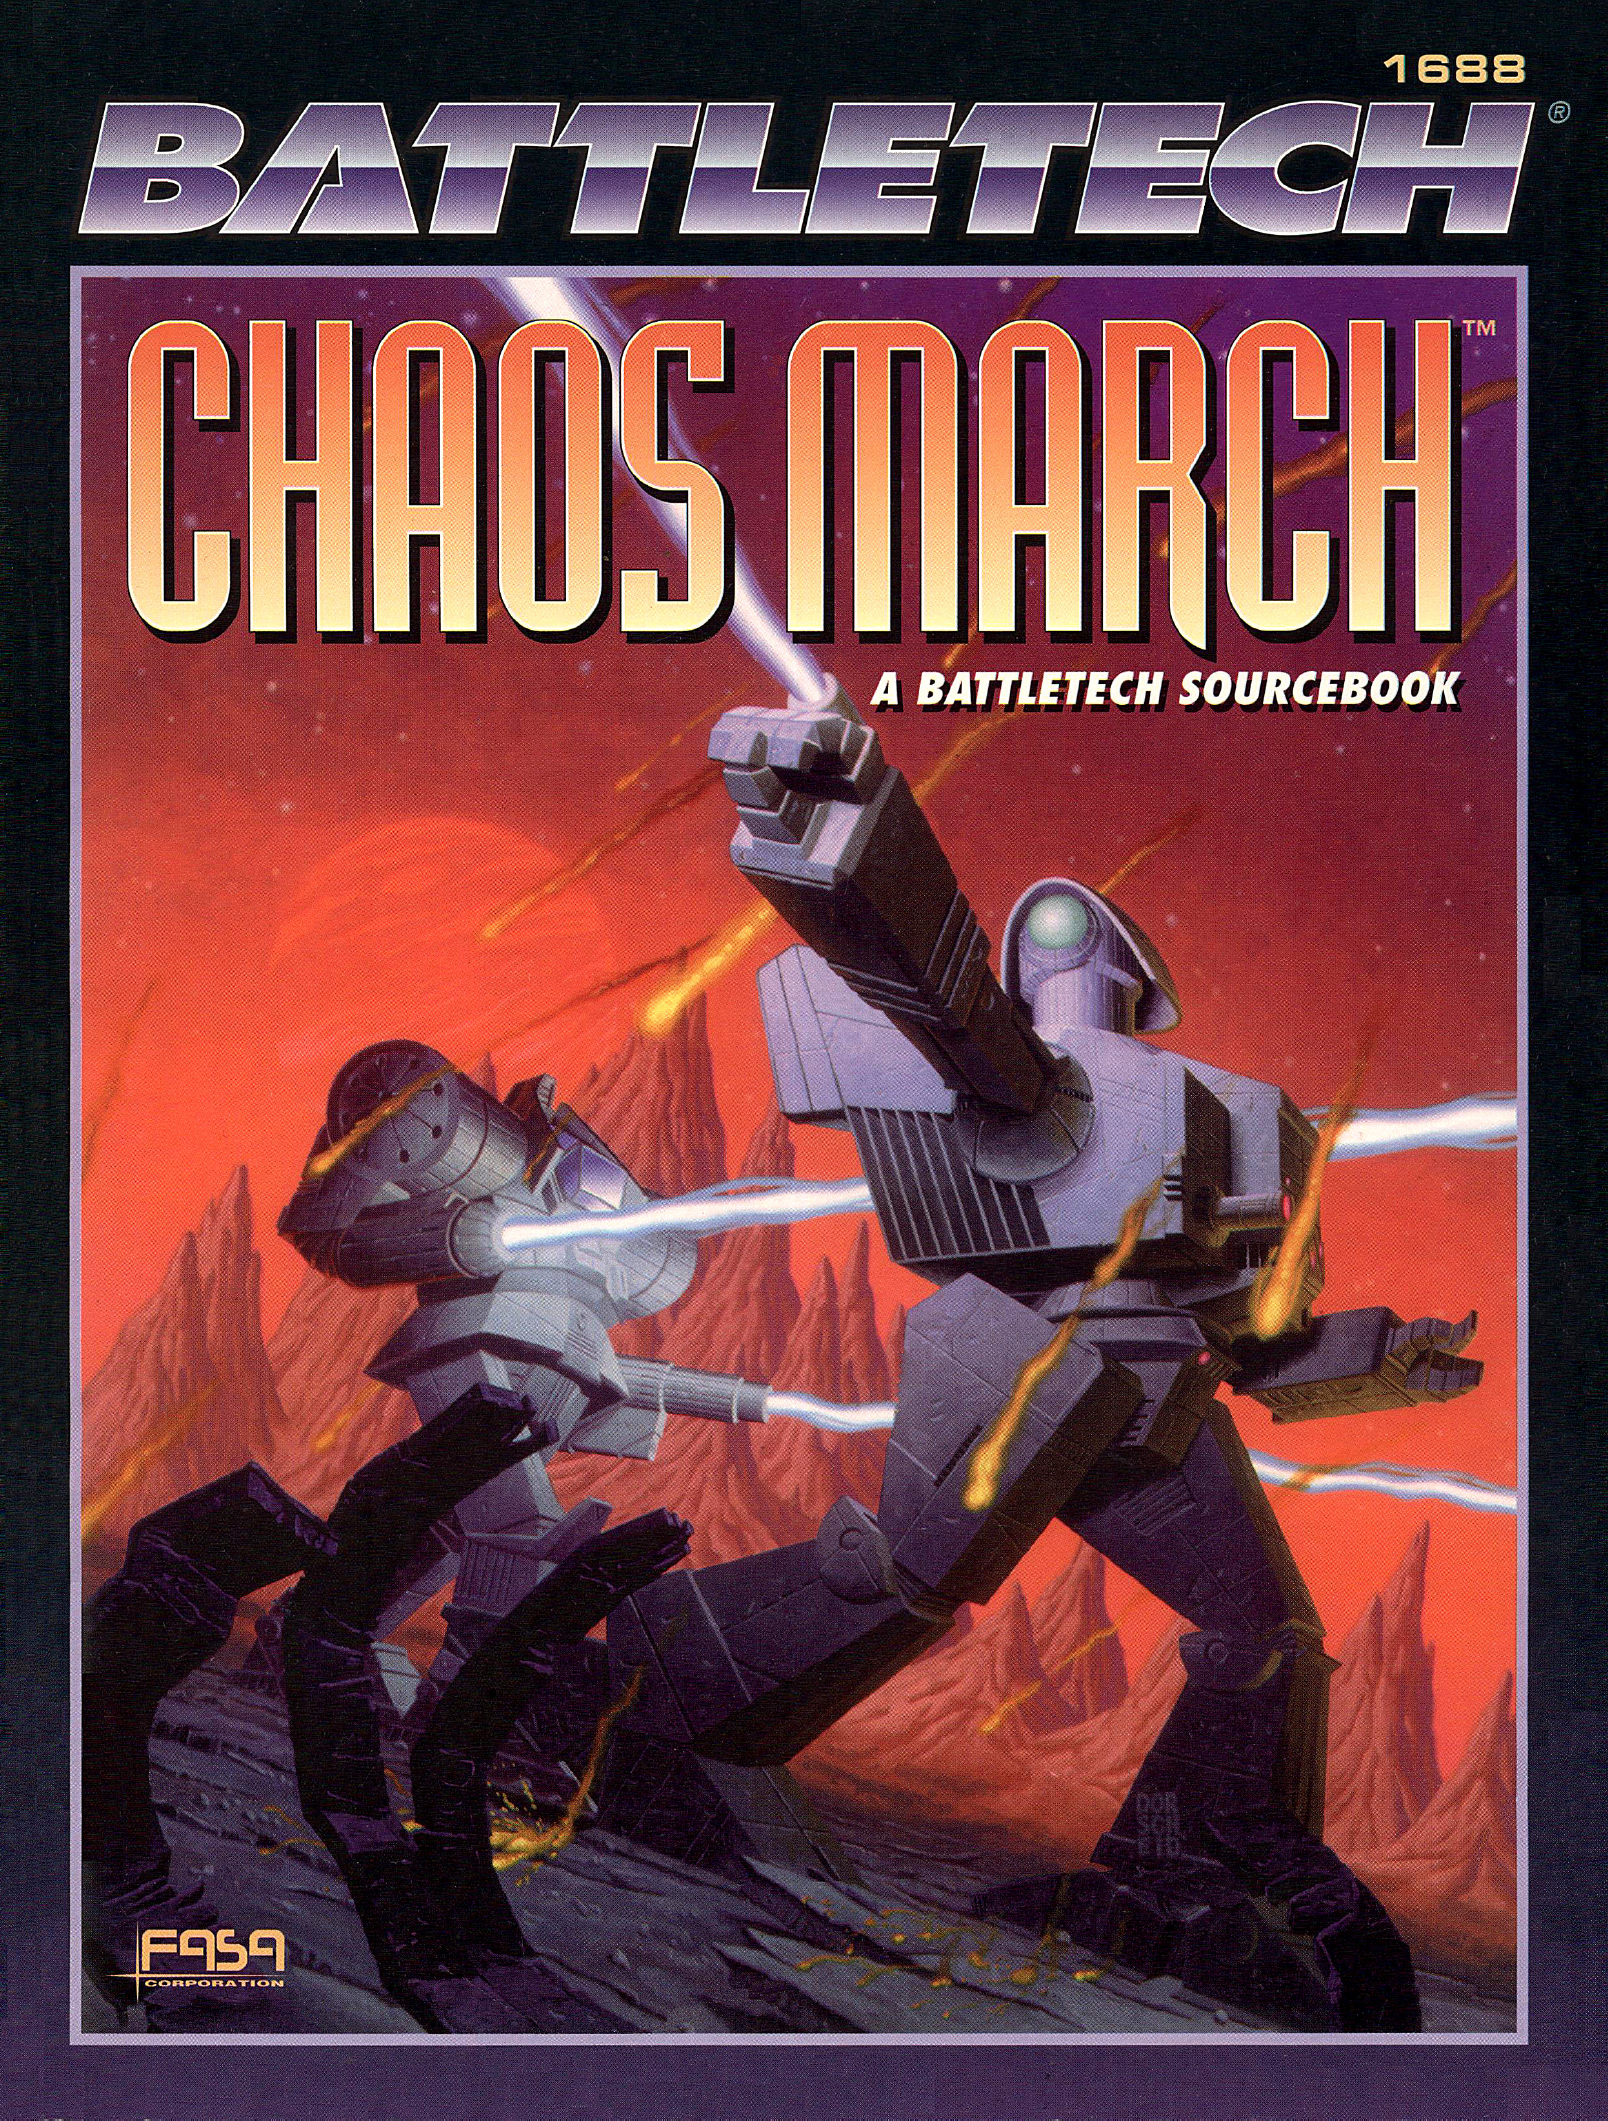 File:ChaosMarch.jpg